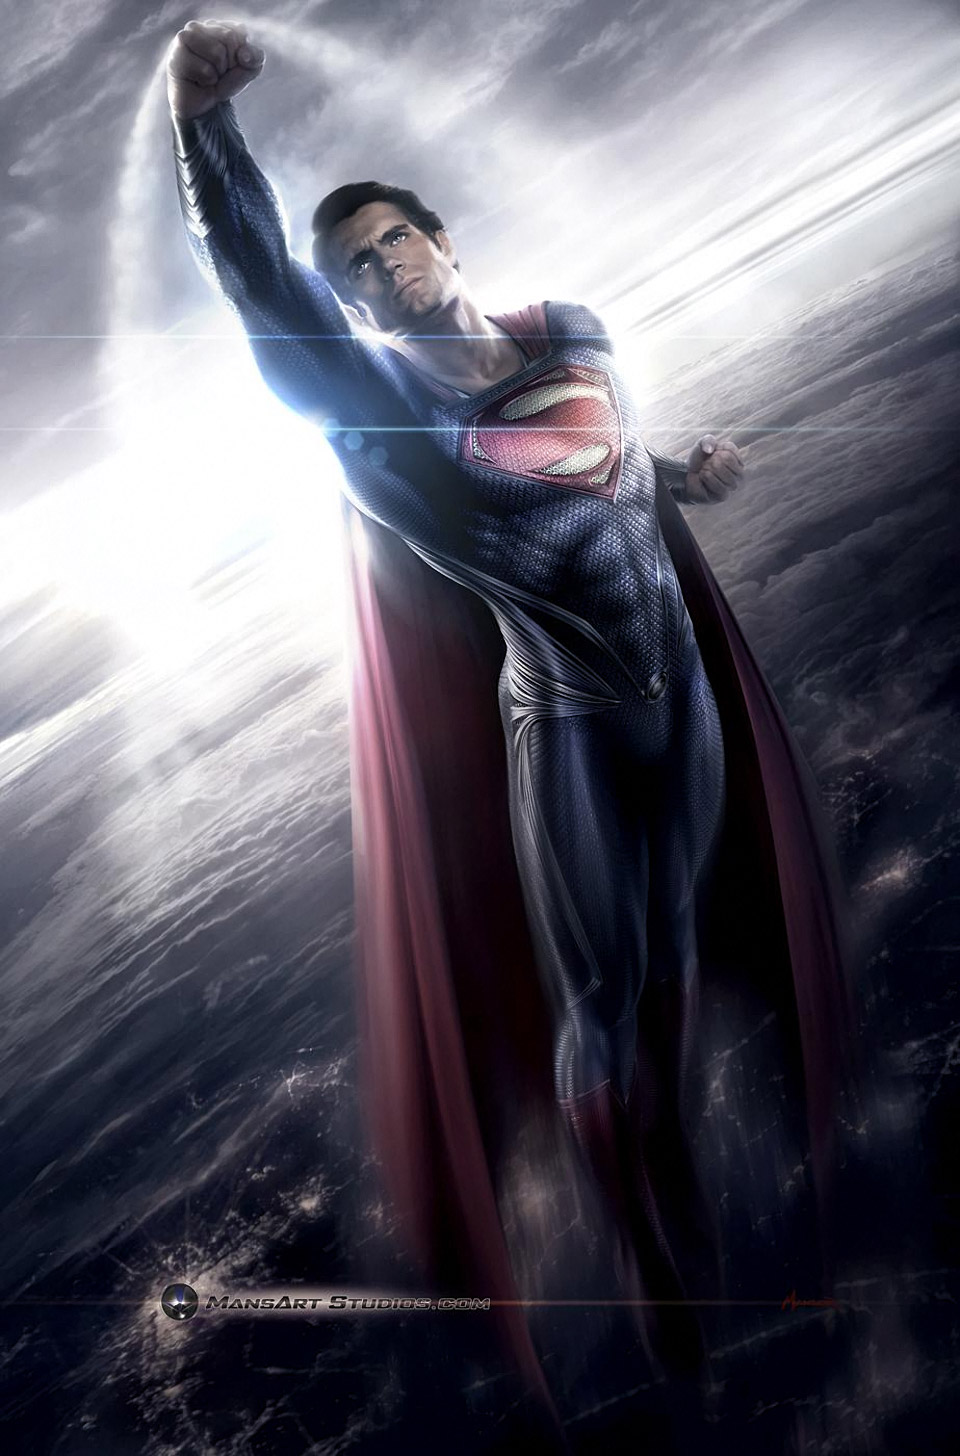 Man of Steel Costume Design and Concept Art - MightyMega